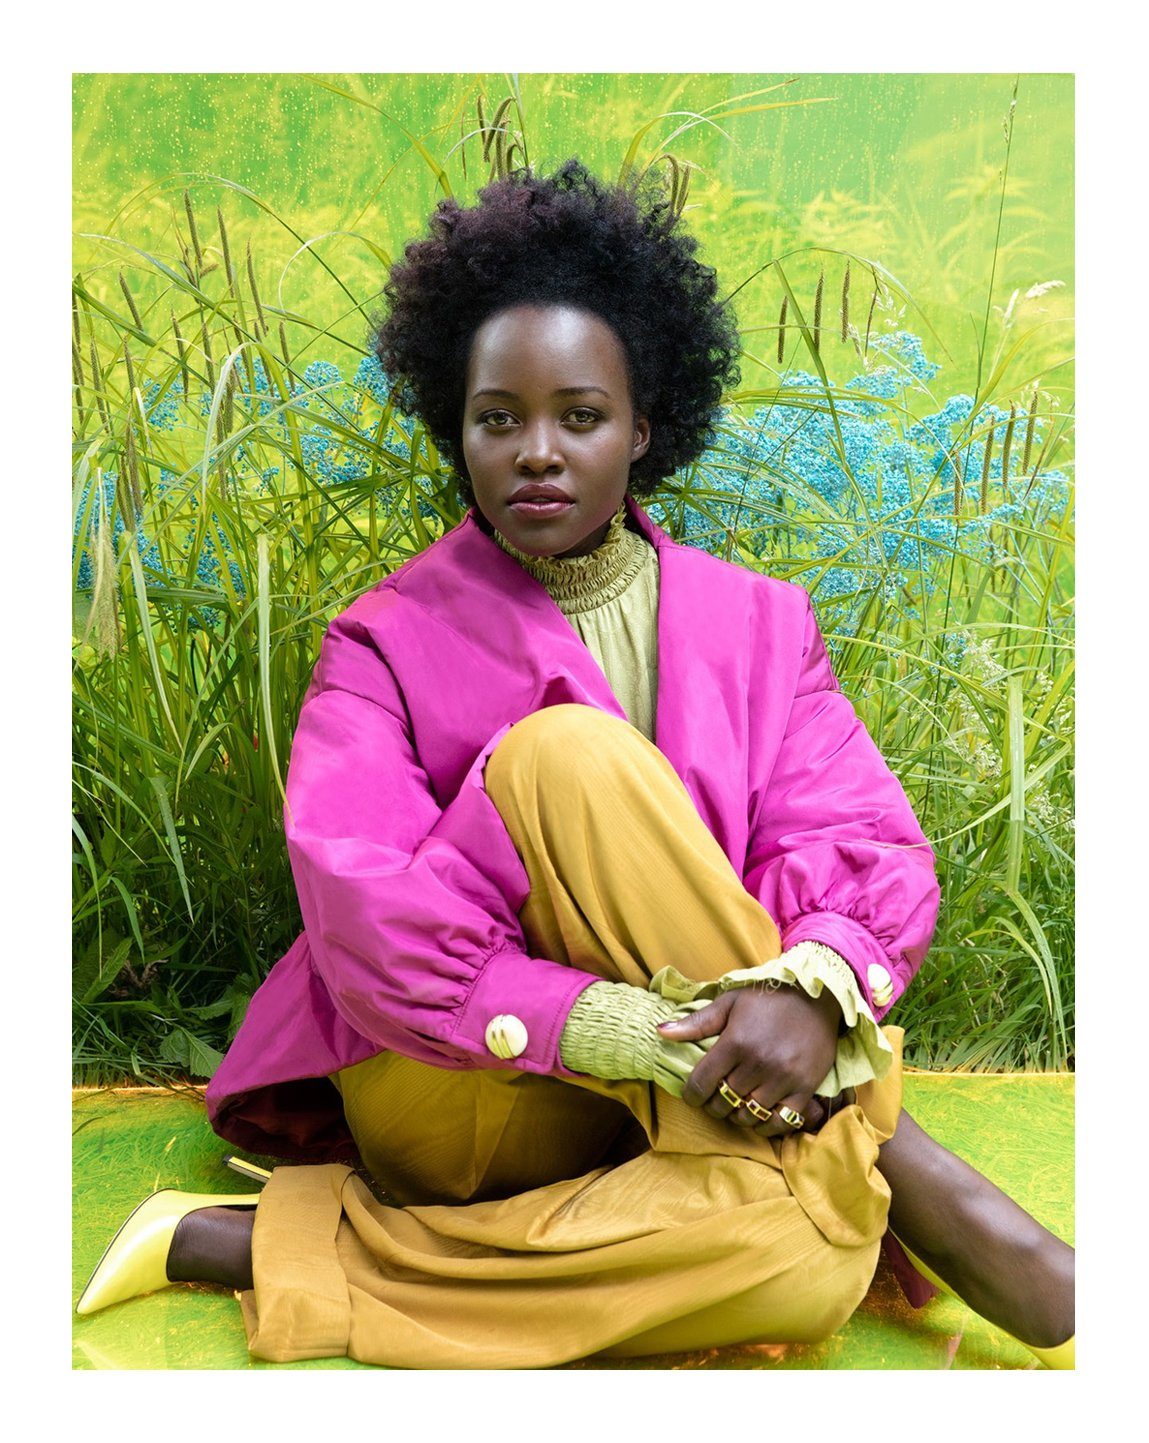 .@Lupita_Nyongo appears on the latest @VanityFair cover story wearing a silk bomber jacket contrasting shirt and moiré pants from #GucciFW19 by #AlessandroMichele. #GucciEditorials Photography by: #JackieNickerson Styling by: #SamiraNasr https://t.co/MqpTOnSQM2